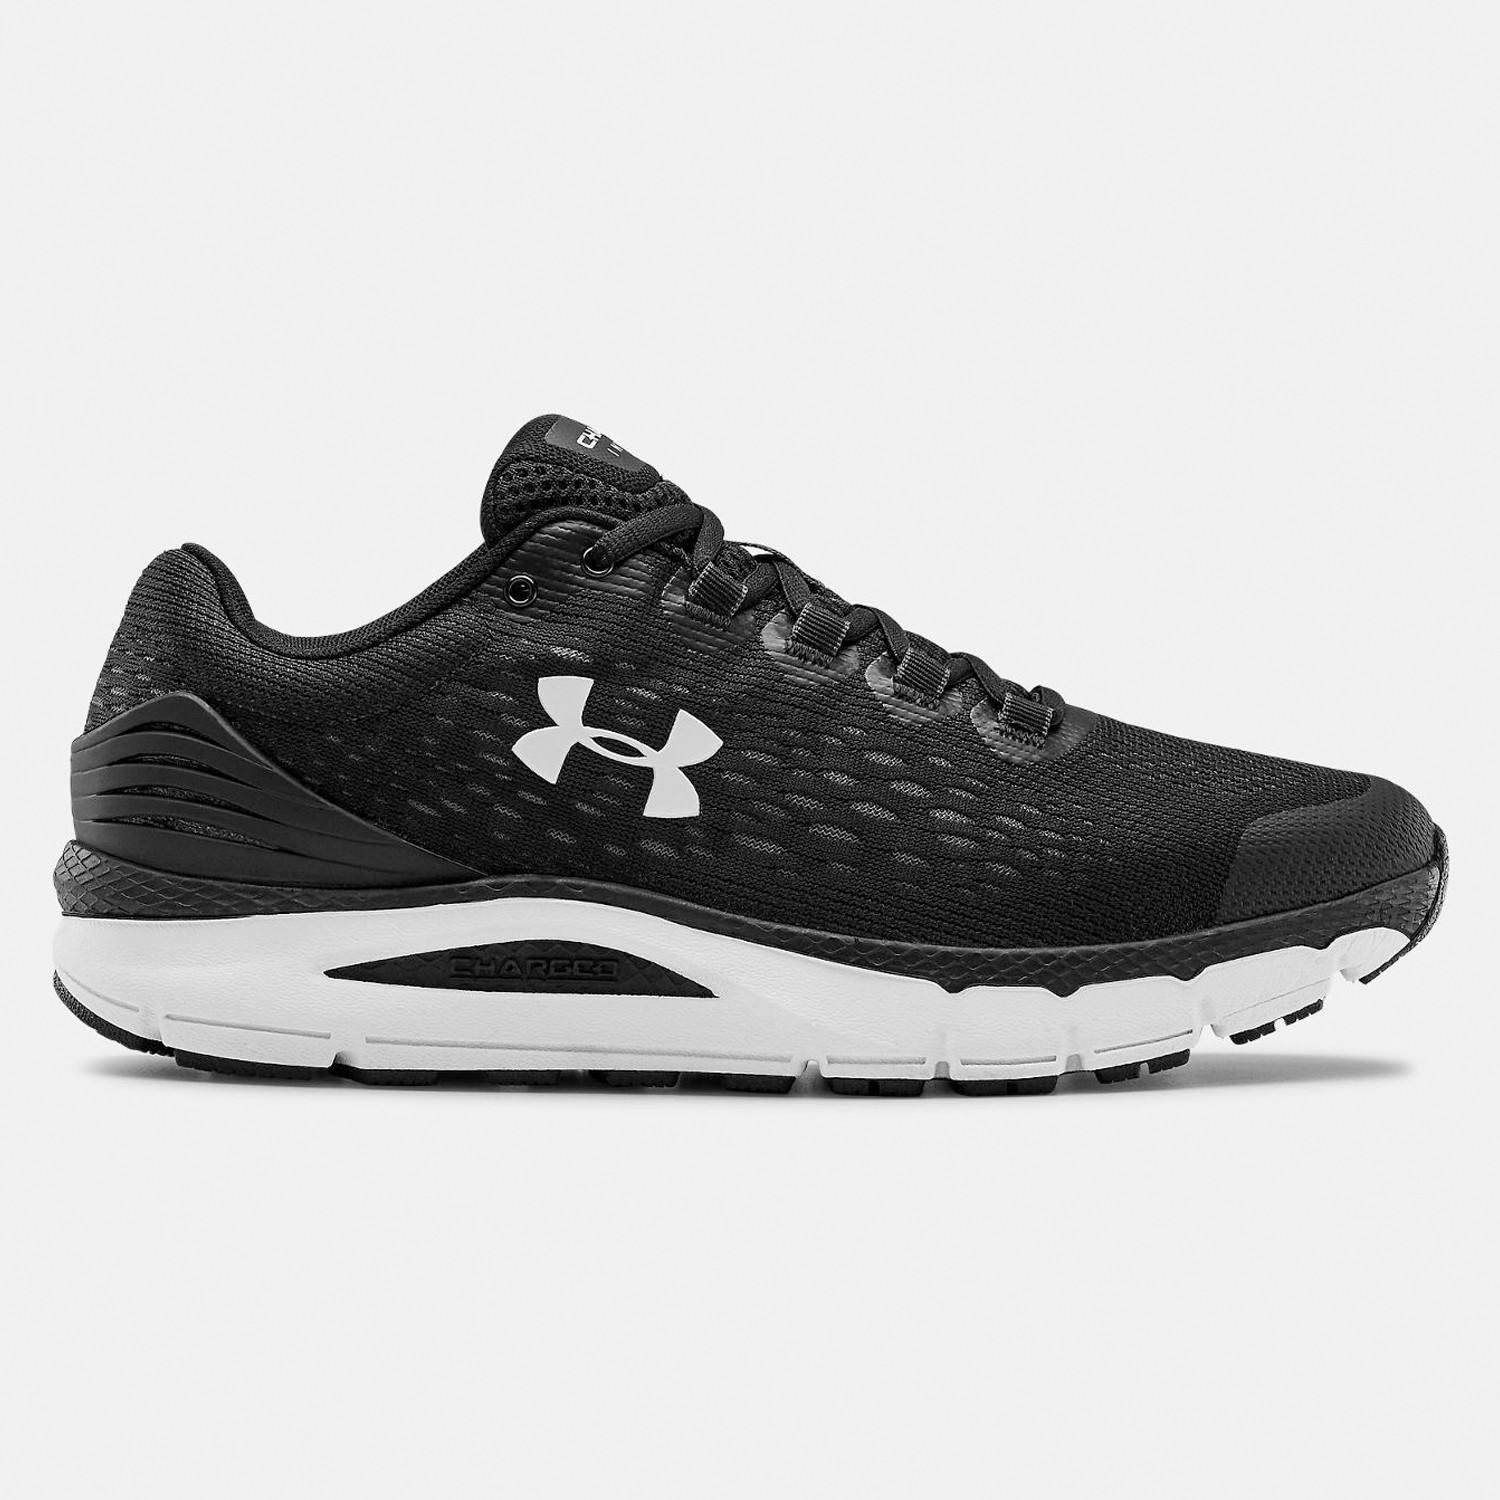 Under Armour Charged Intake 4 Men'S Shoes (9000047787_8509)